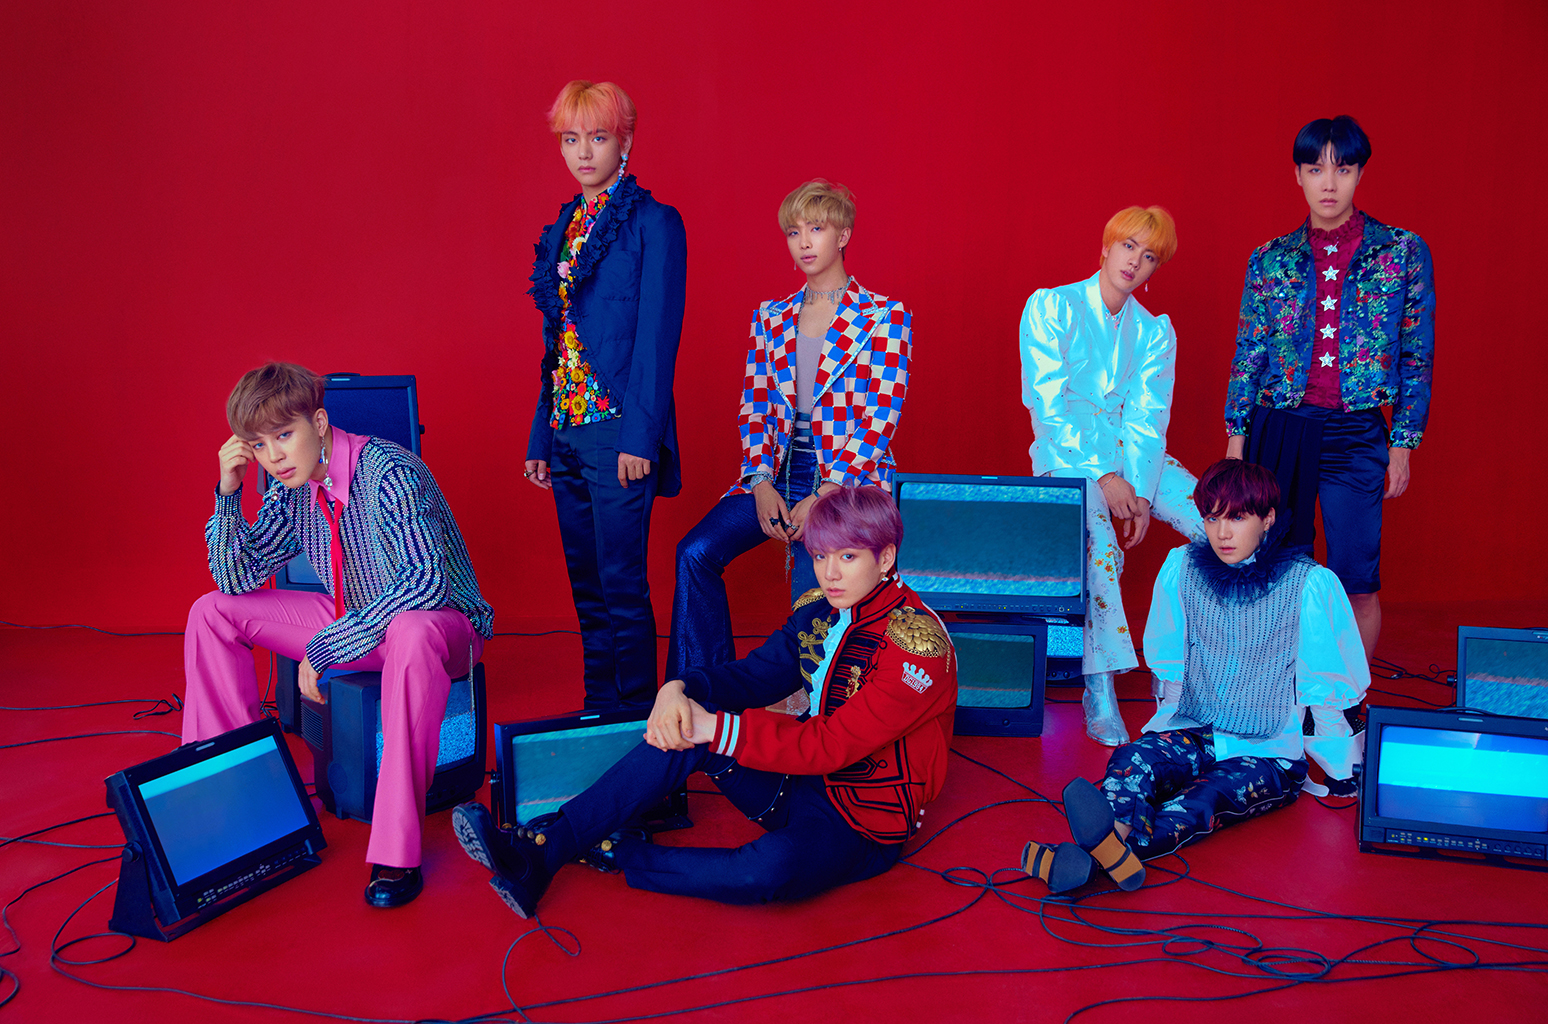 BTS Launch A New Chapter With 'MAP OF THE SOUL : PERSONA'